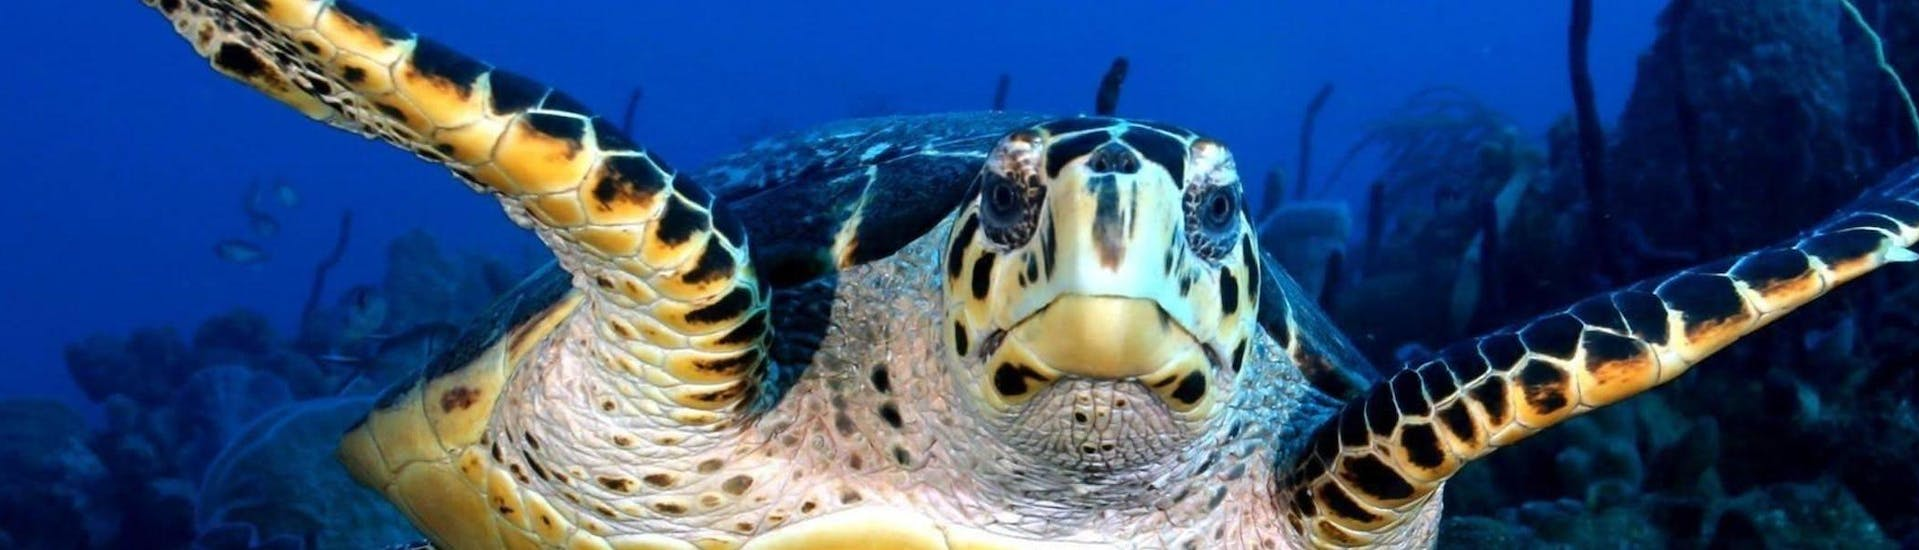 A turtle is pictured during the Trial Scuba Diving in Réserve Cousteau for Beginners activity with Les Heures Saines Guadeloupe.